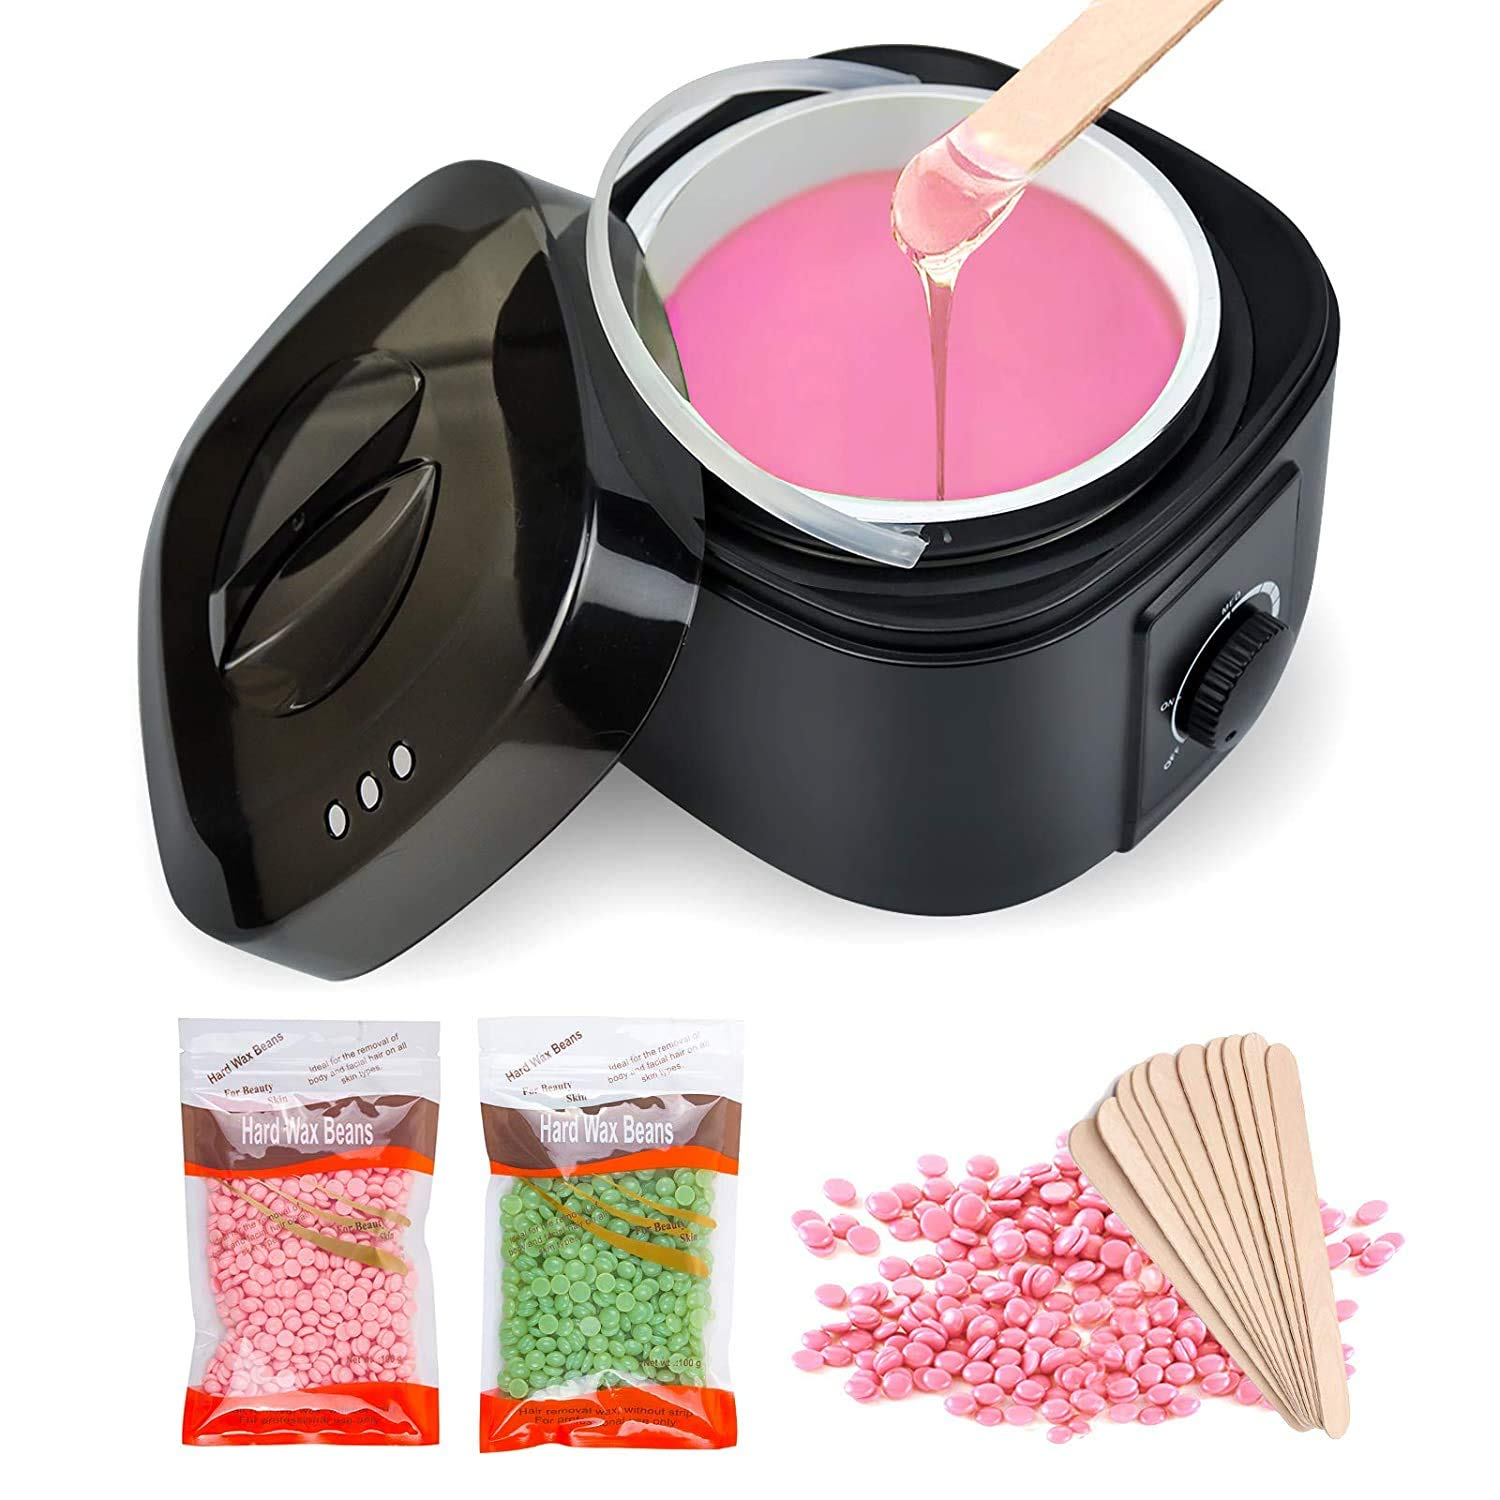 Waxing Kit for Women Wax Warmer for Hair Removal Wax Kit Machine